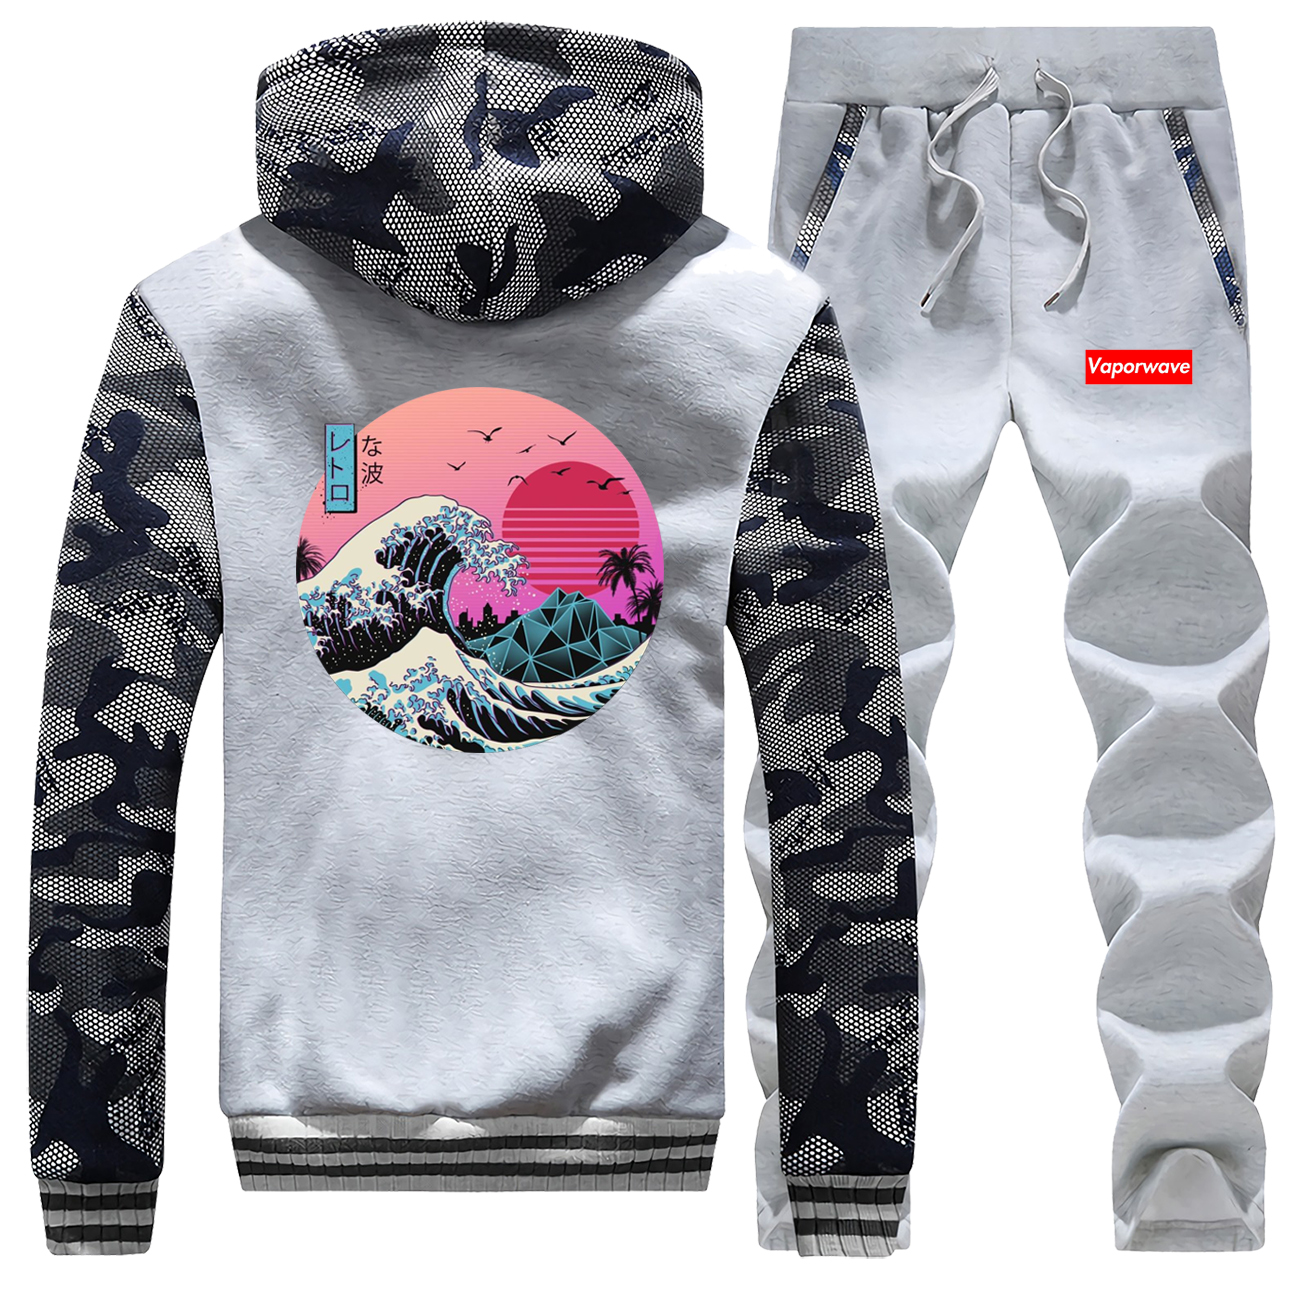 Dragon Ball Japan Anime Winter Hot Sale Camouflage Mens Hoodie Coat Thick Hip Hop Streetwear Suit Warm Jackets+2Piece Set Pants